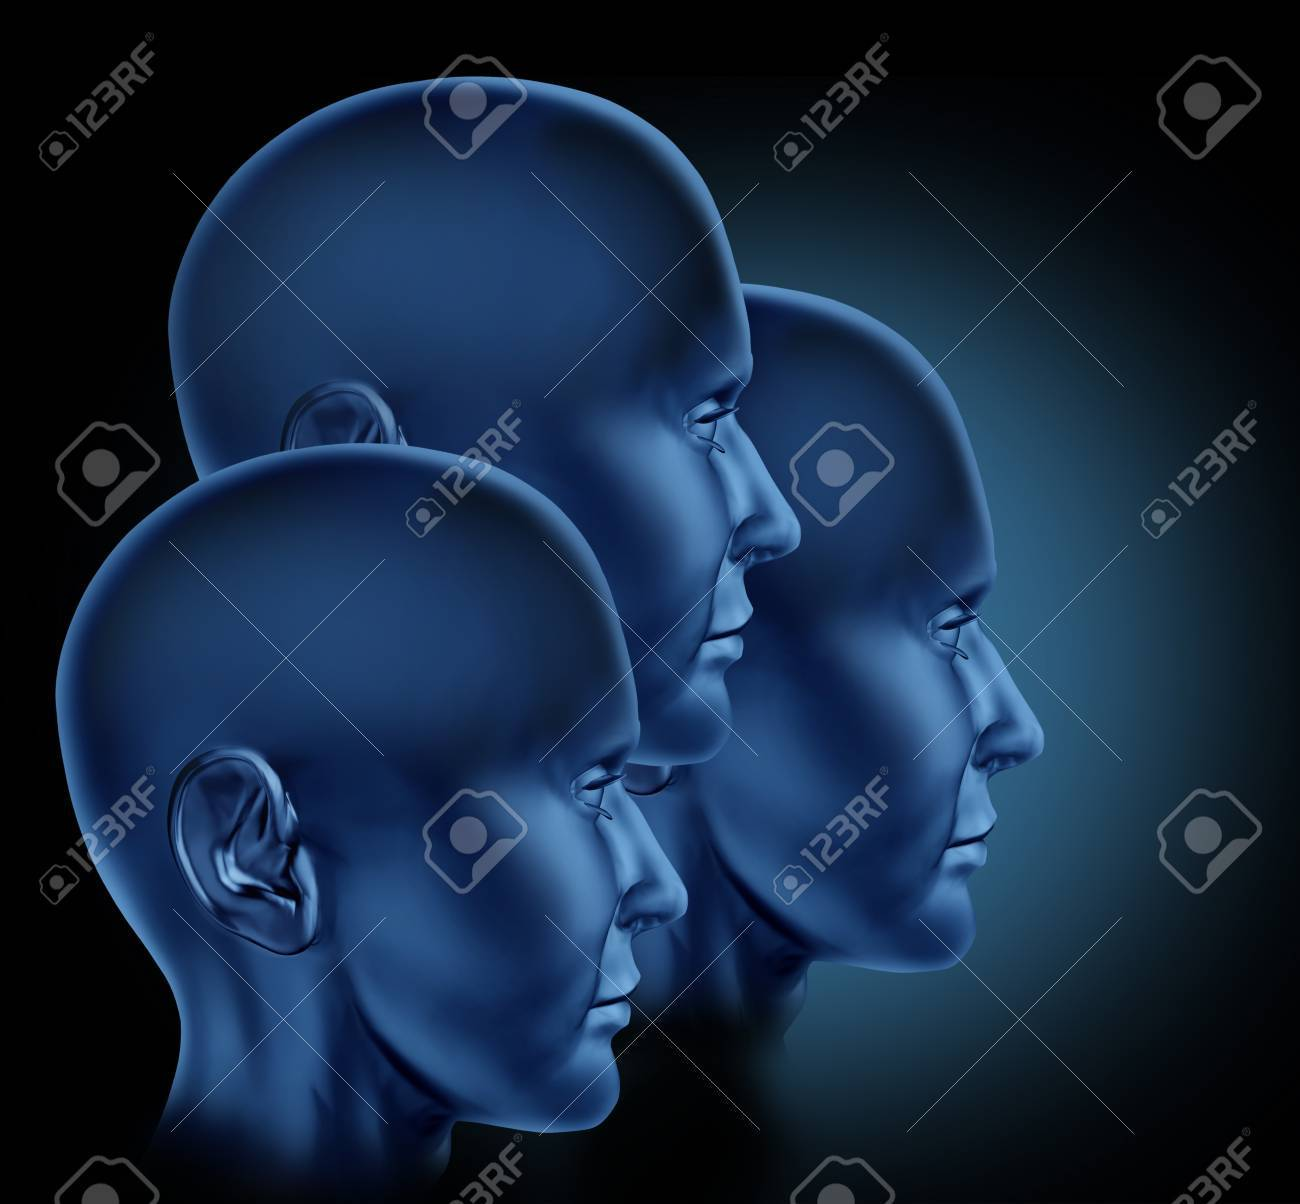 Leadership and teamwork business symbol represented by three human leadership and teamwork business symbol represented by three human heads looking towards strategic financial opportunity imagens biocorpaavc Choice Image